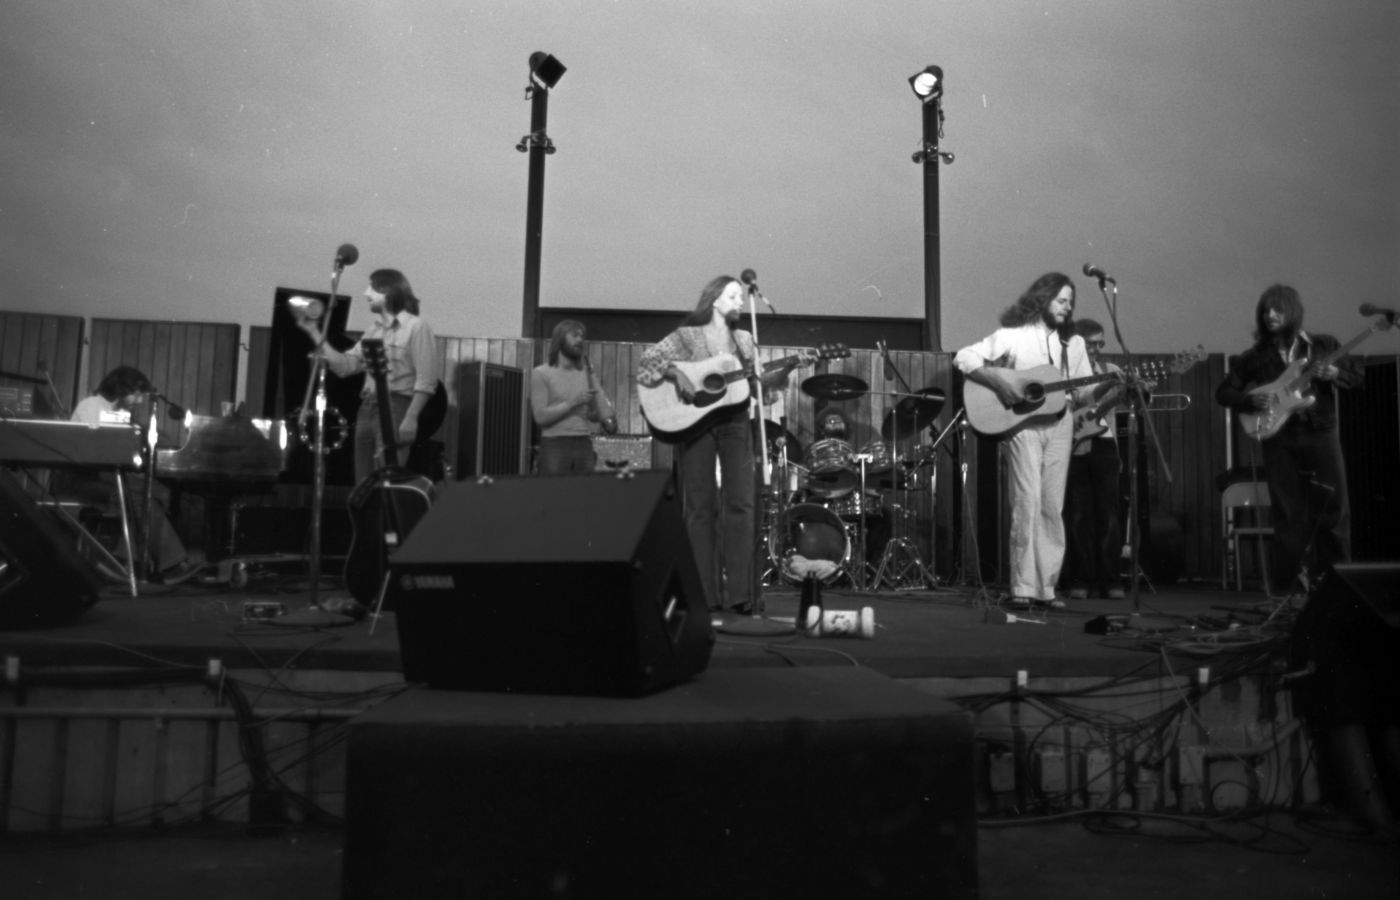 """""""Black and white photograph of seven musicians (three guitarists, a bassist, a pianist, and two percussionists) on an outdoor stage in dim light. The group includes six long-haired men and a woman, of mature age, wearing casual clothes.  """""""